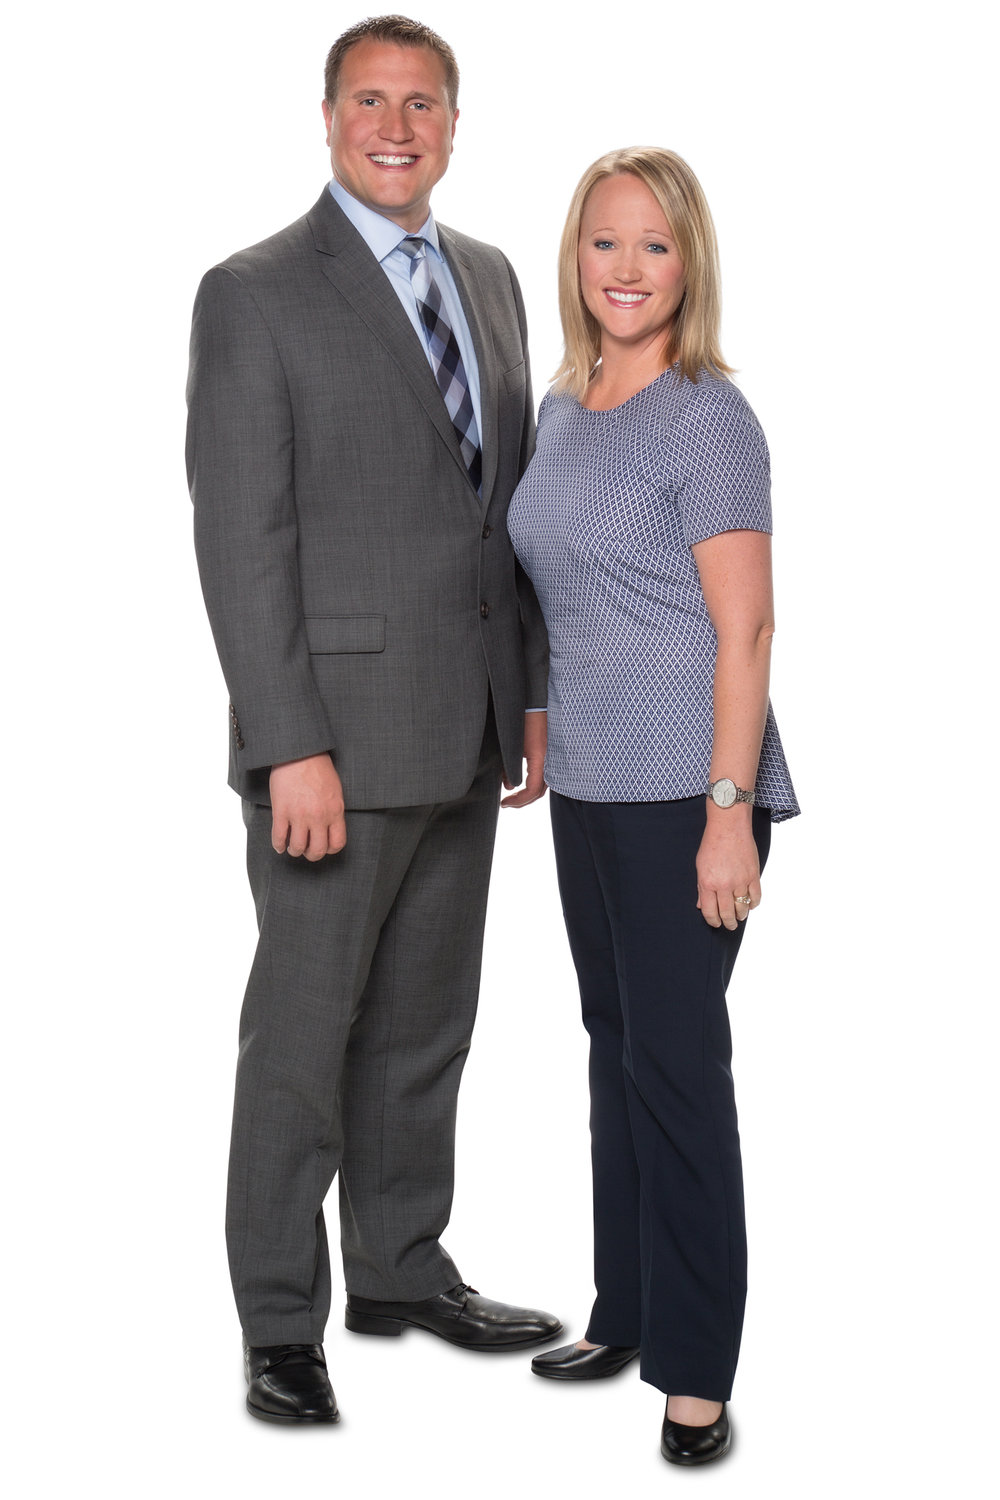 Sound real estate advice at every step of the sale of your home. - Ken and Alicia will be there for you at every step of your real estate transaction. You can expect promptly returned phone calls and emails, sound understanding of fresh marketing tools, excellent understanding of the market, and elite knowledge of the many contracts and disclosures that are part of the contract. Ken and Alicia would love to work with you. Give them a call today.